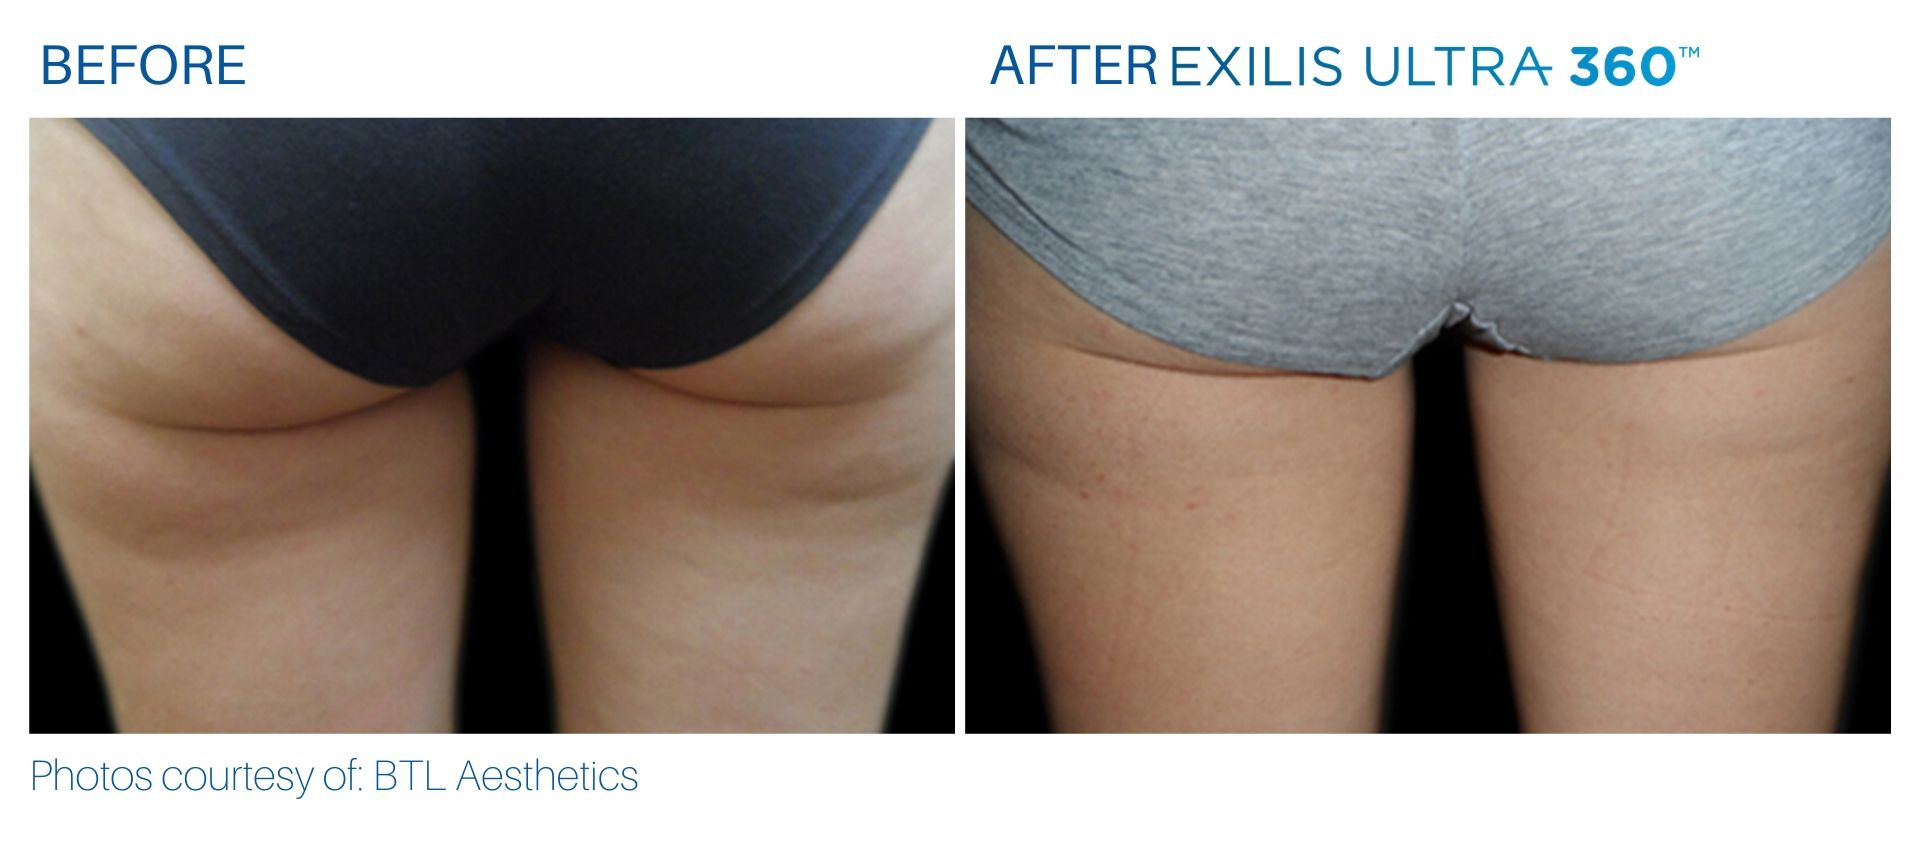 Cellulite treatment before and after at The Sophia Med Spa in Sudbury, Massachusetts